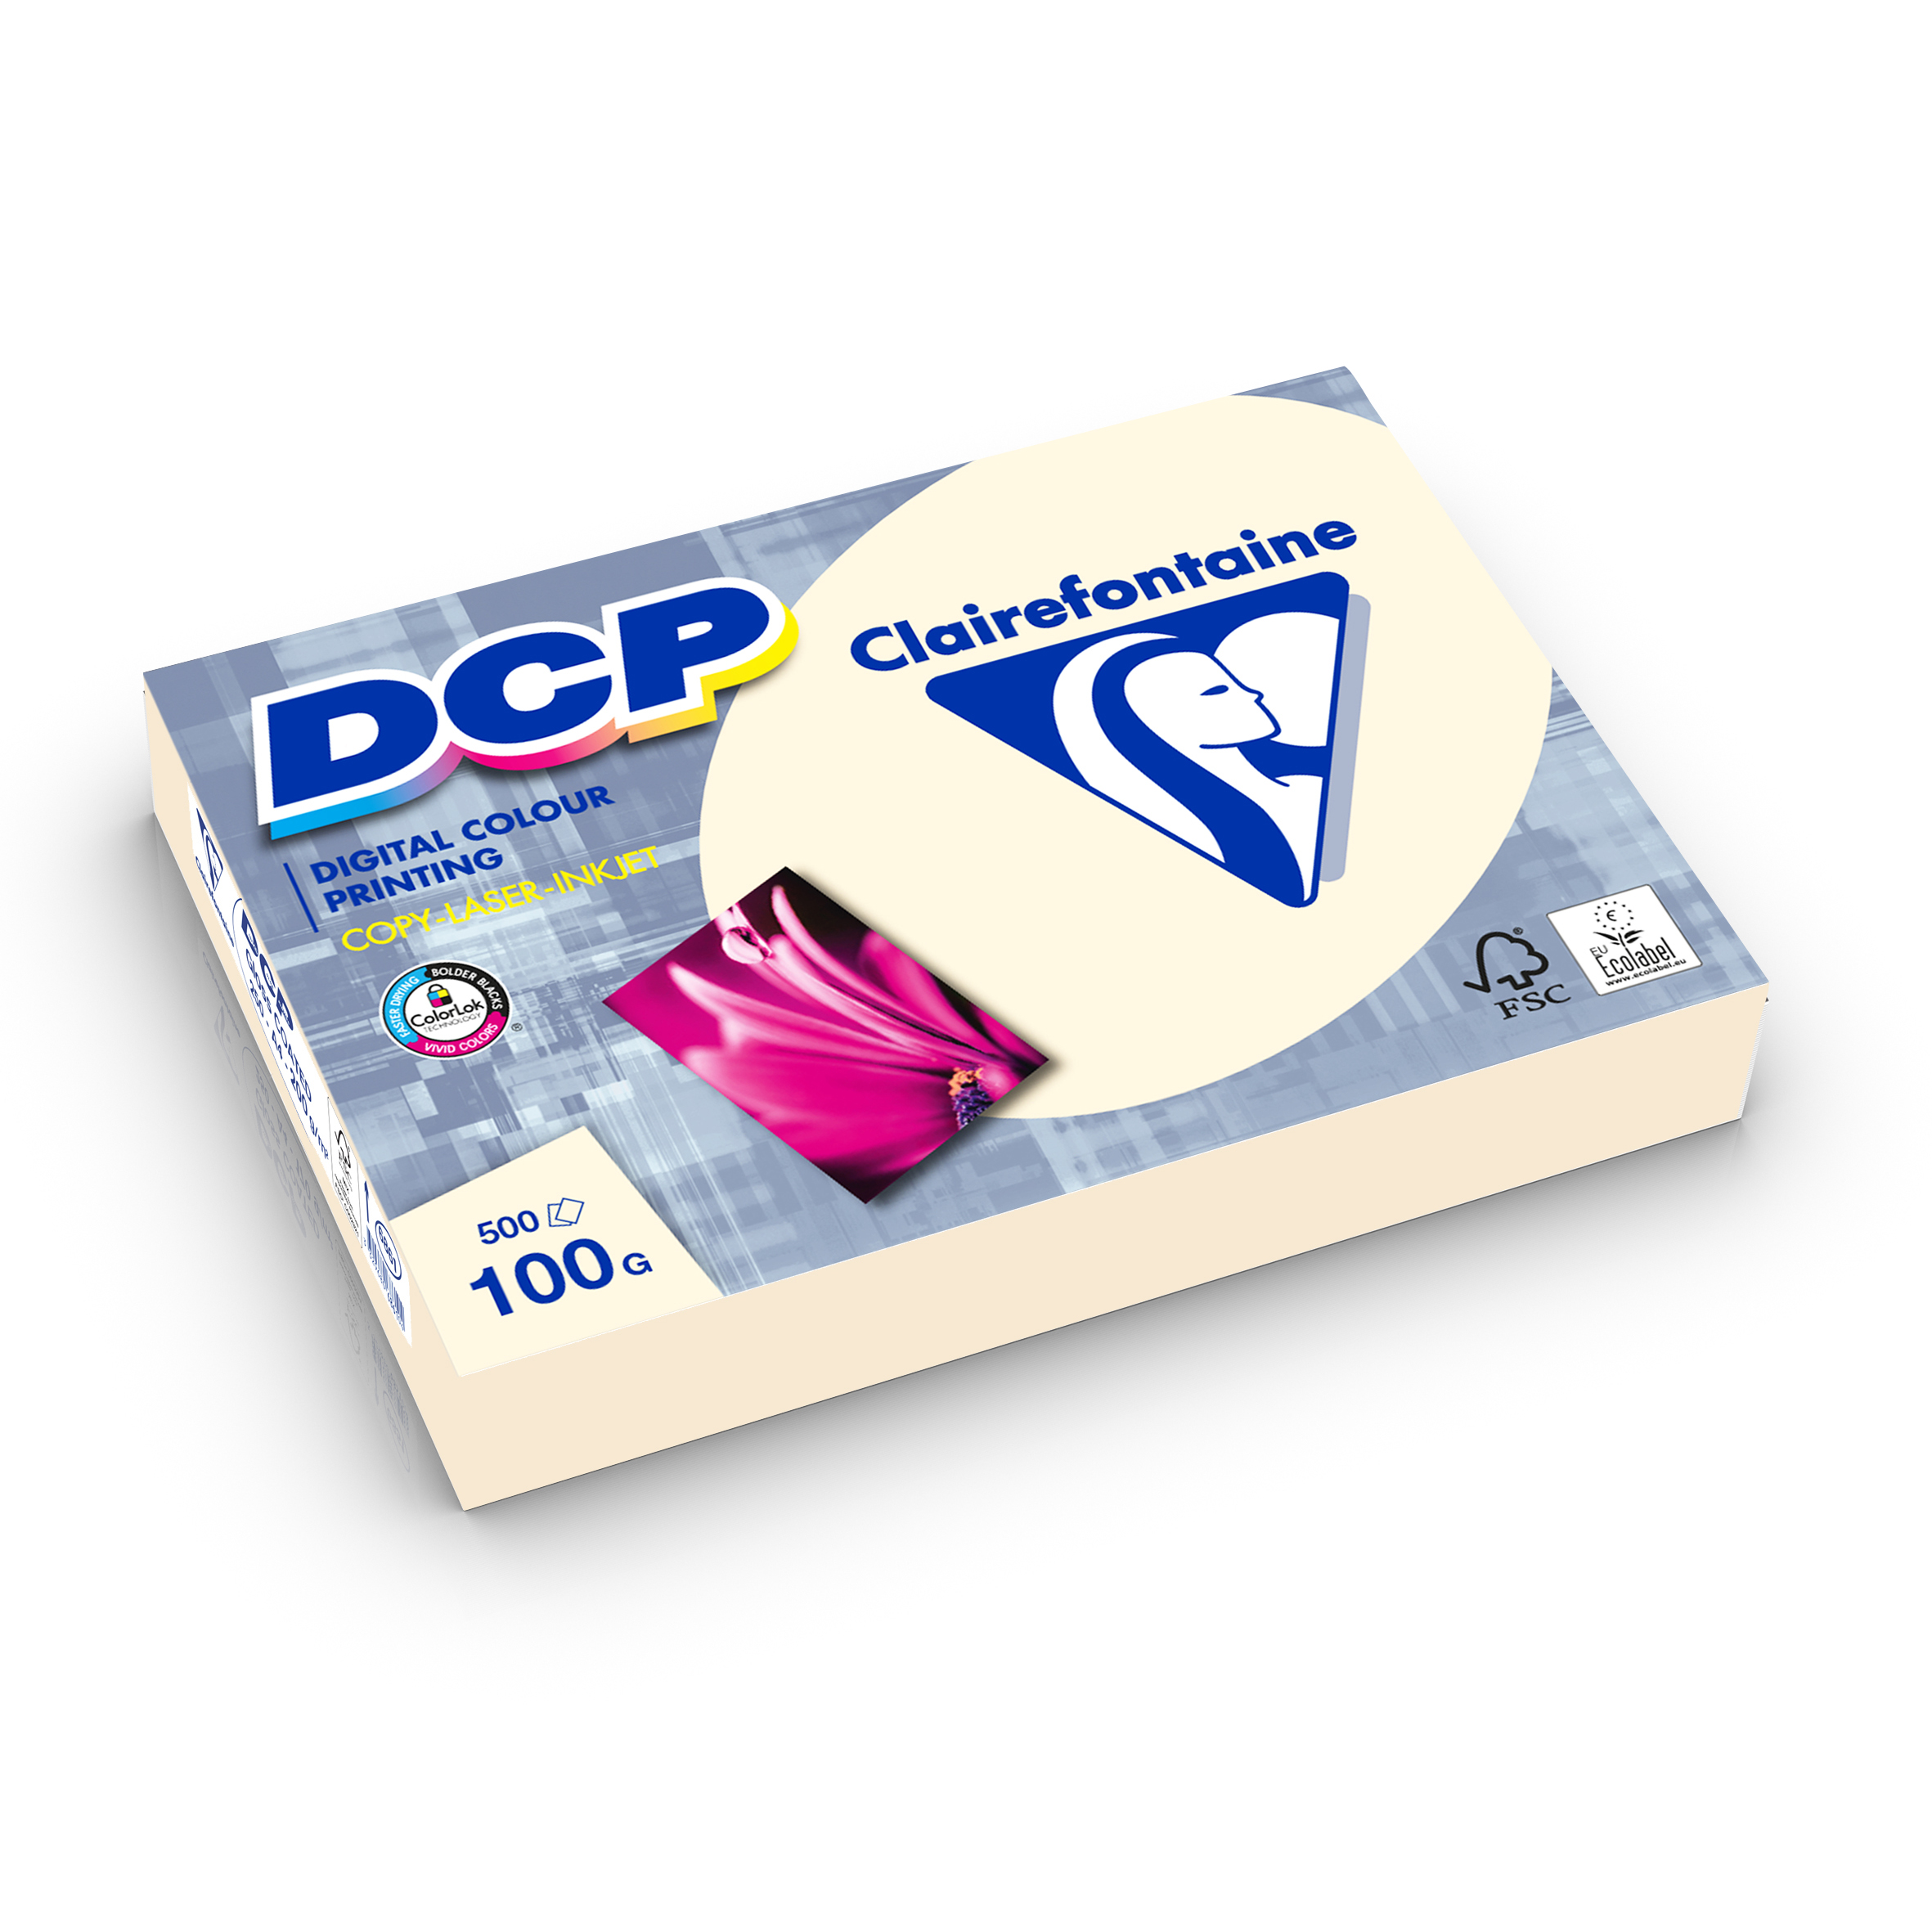 Clairefontaine DCP Ivory elfenbein digital color printing 100g/m² DIN-A3 500 Blatt 1862C